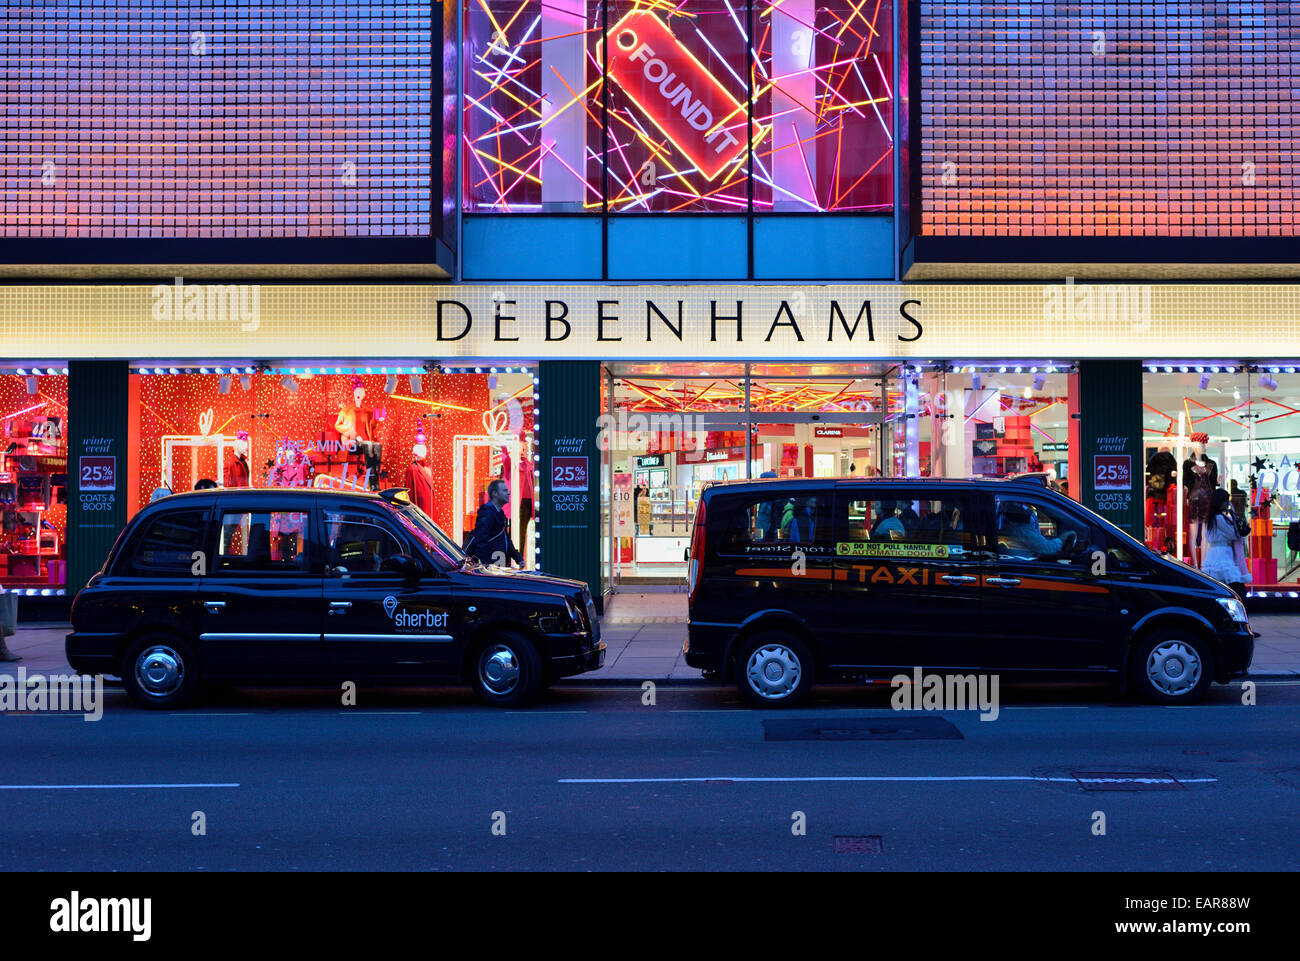 Taxis outside store, Oxford Street, London, United Kingdom - Stock Image